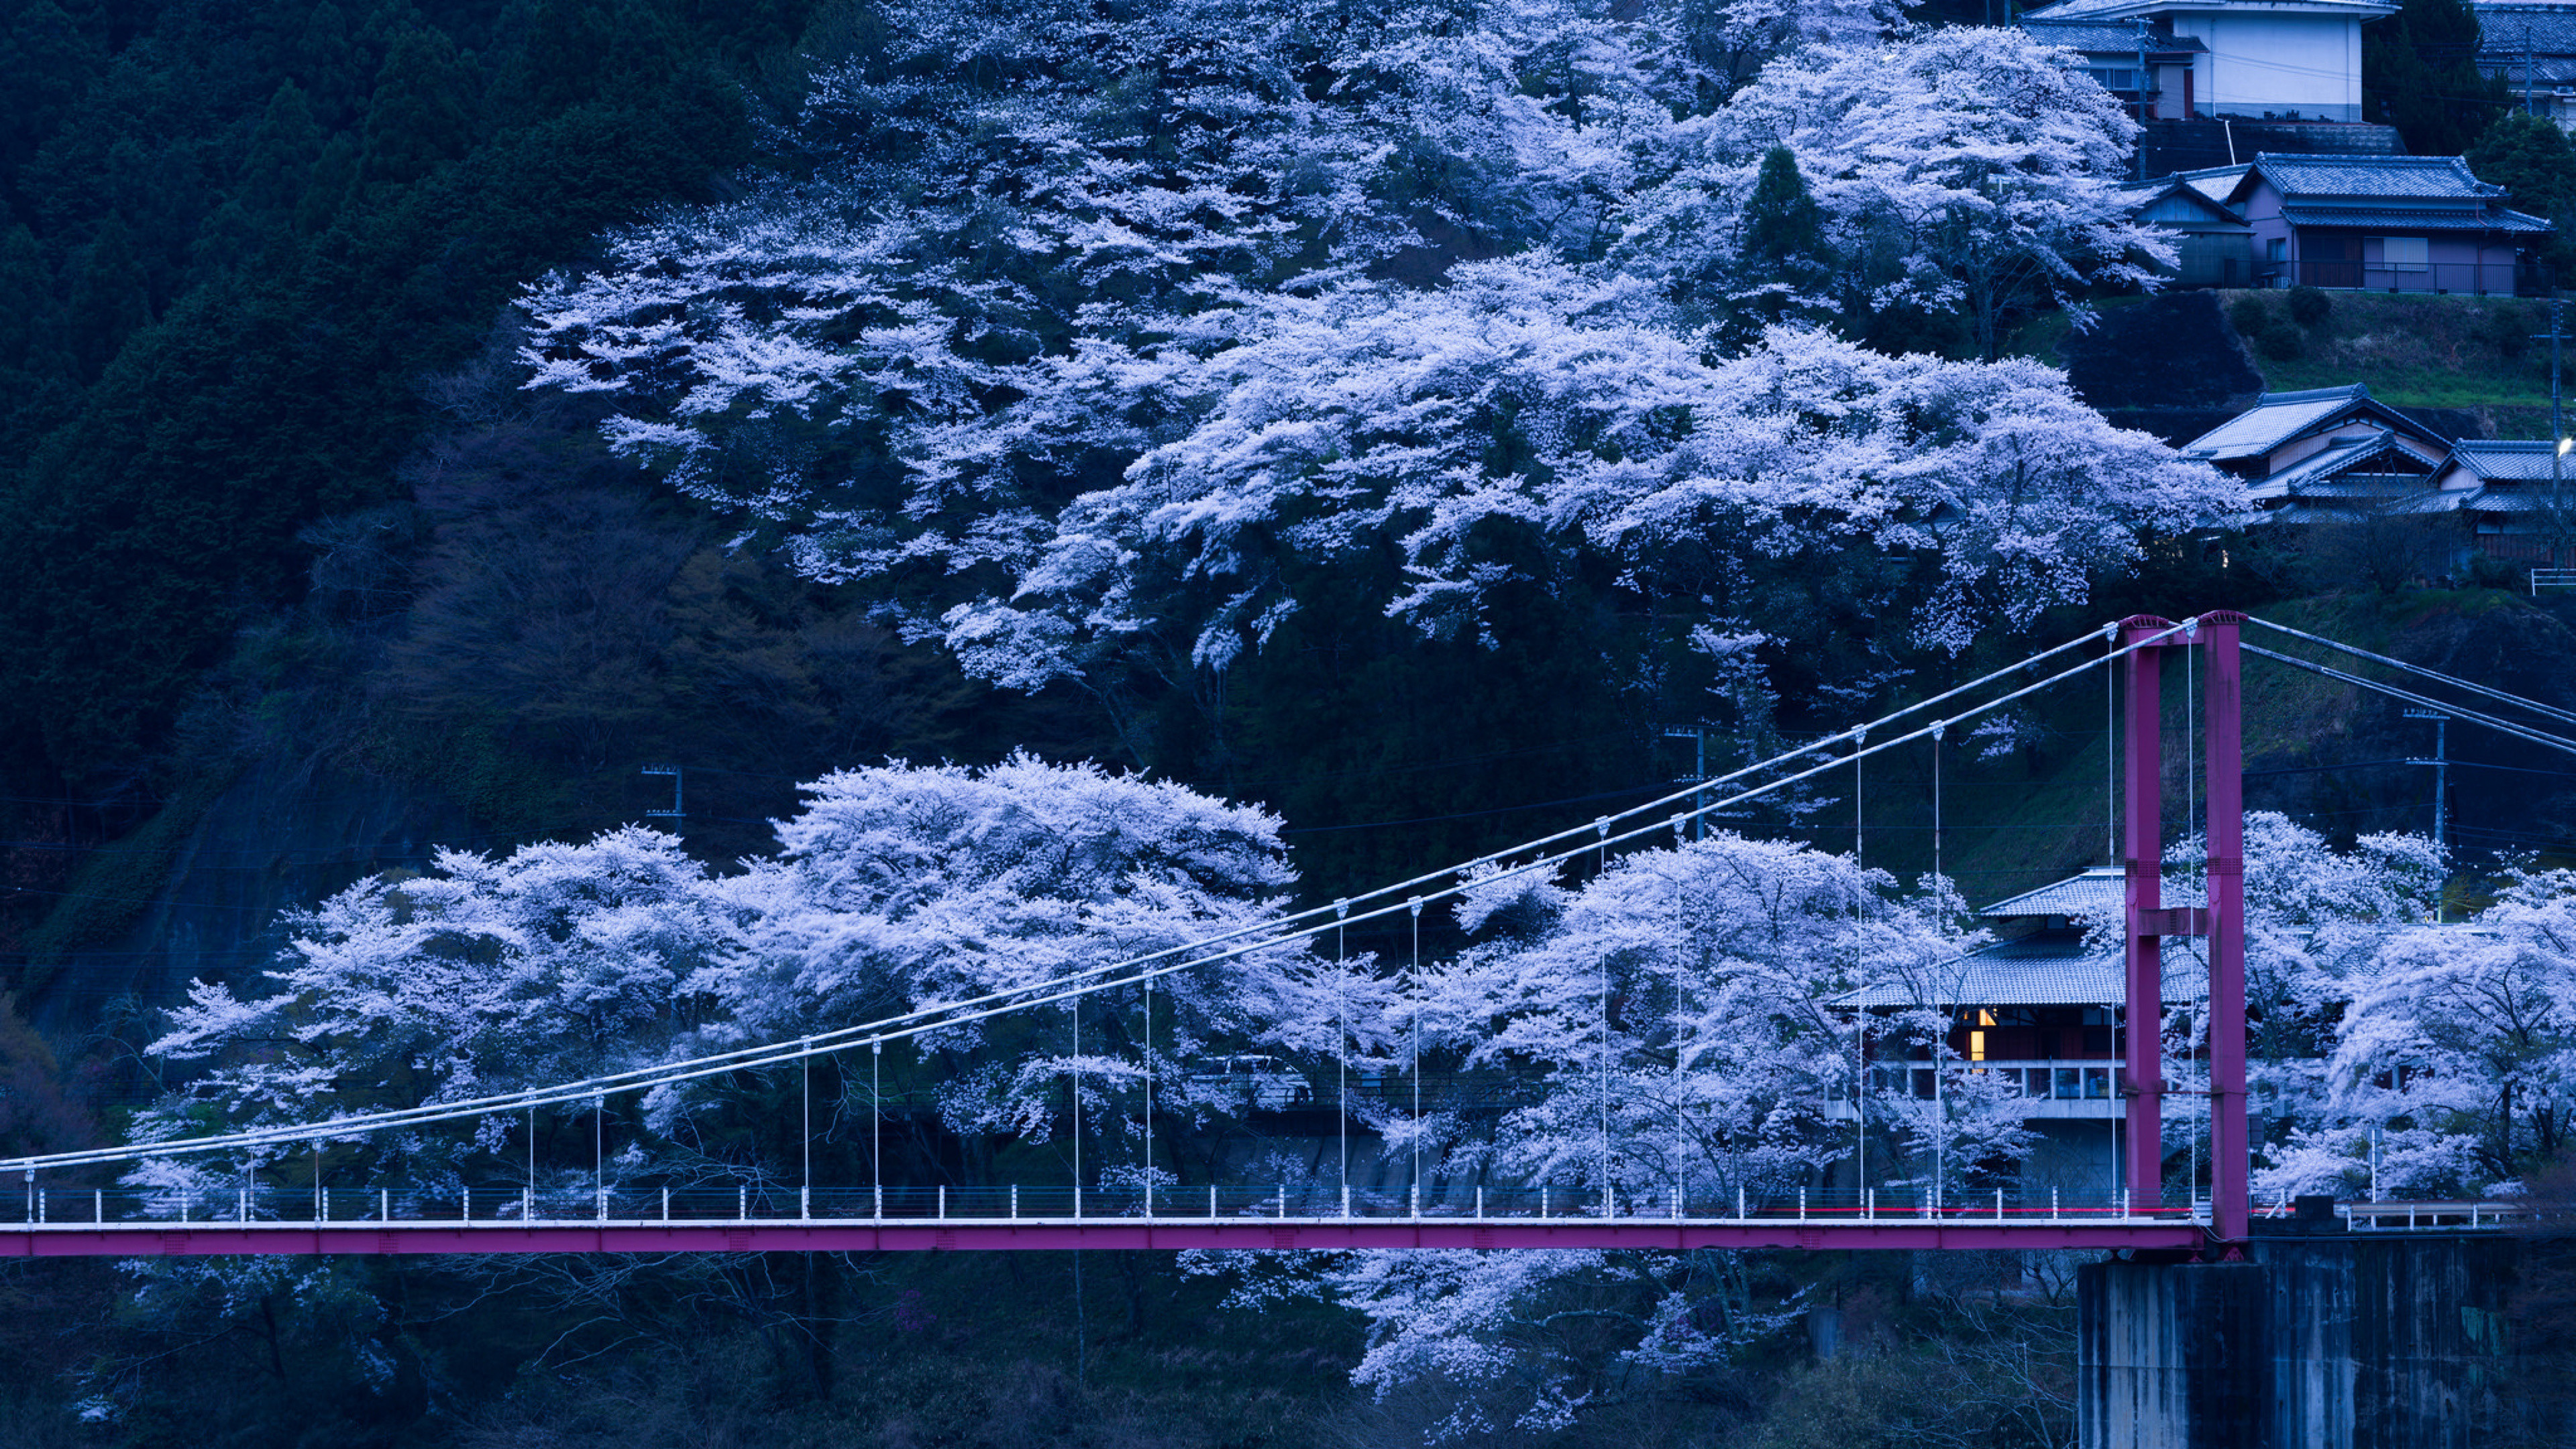 3840x2160 Sky, Japan, Cherry Blossom, Color, Plant Wallpaper in  Resolution